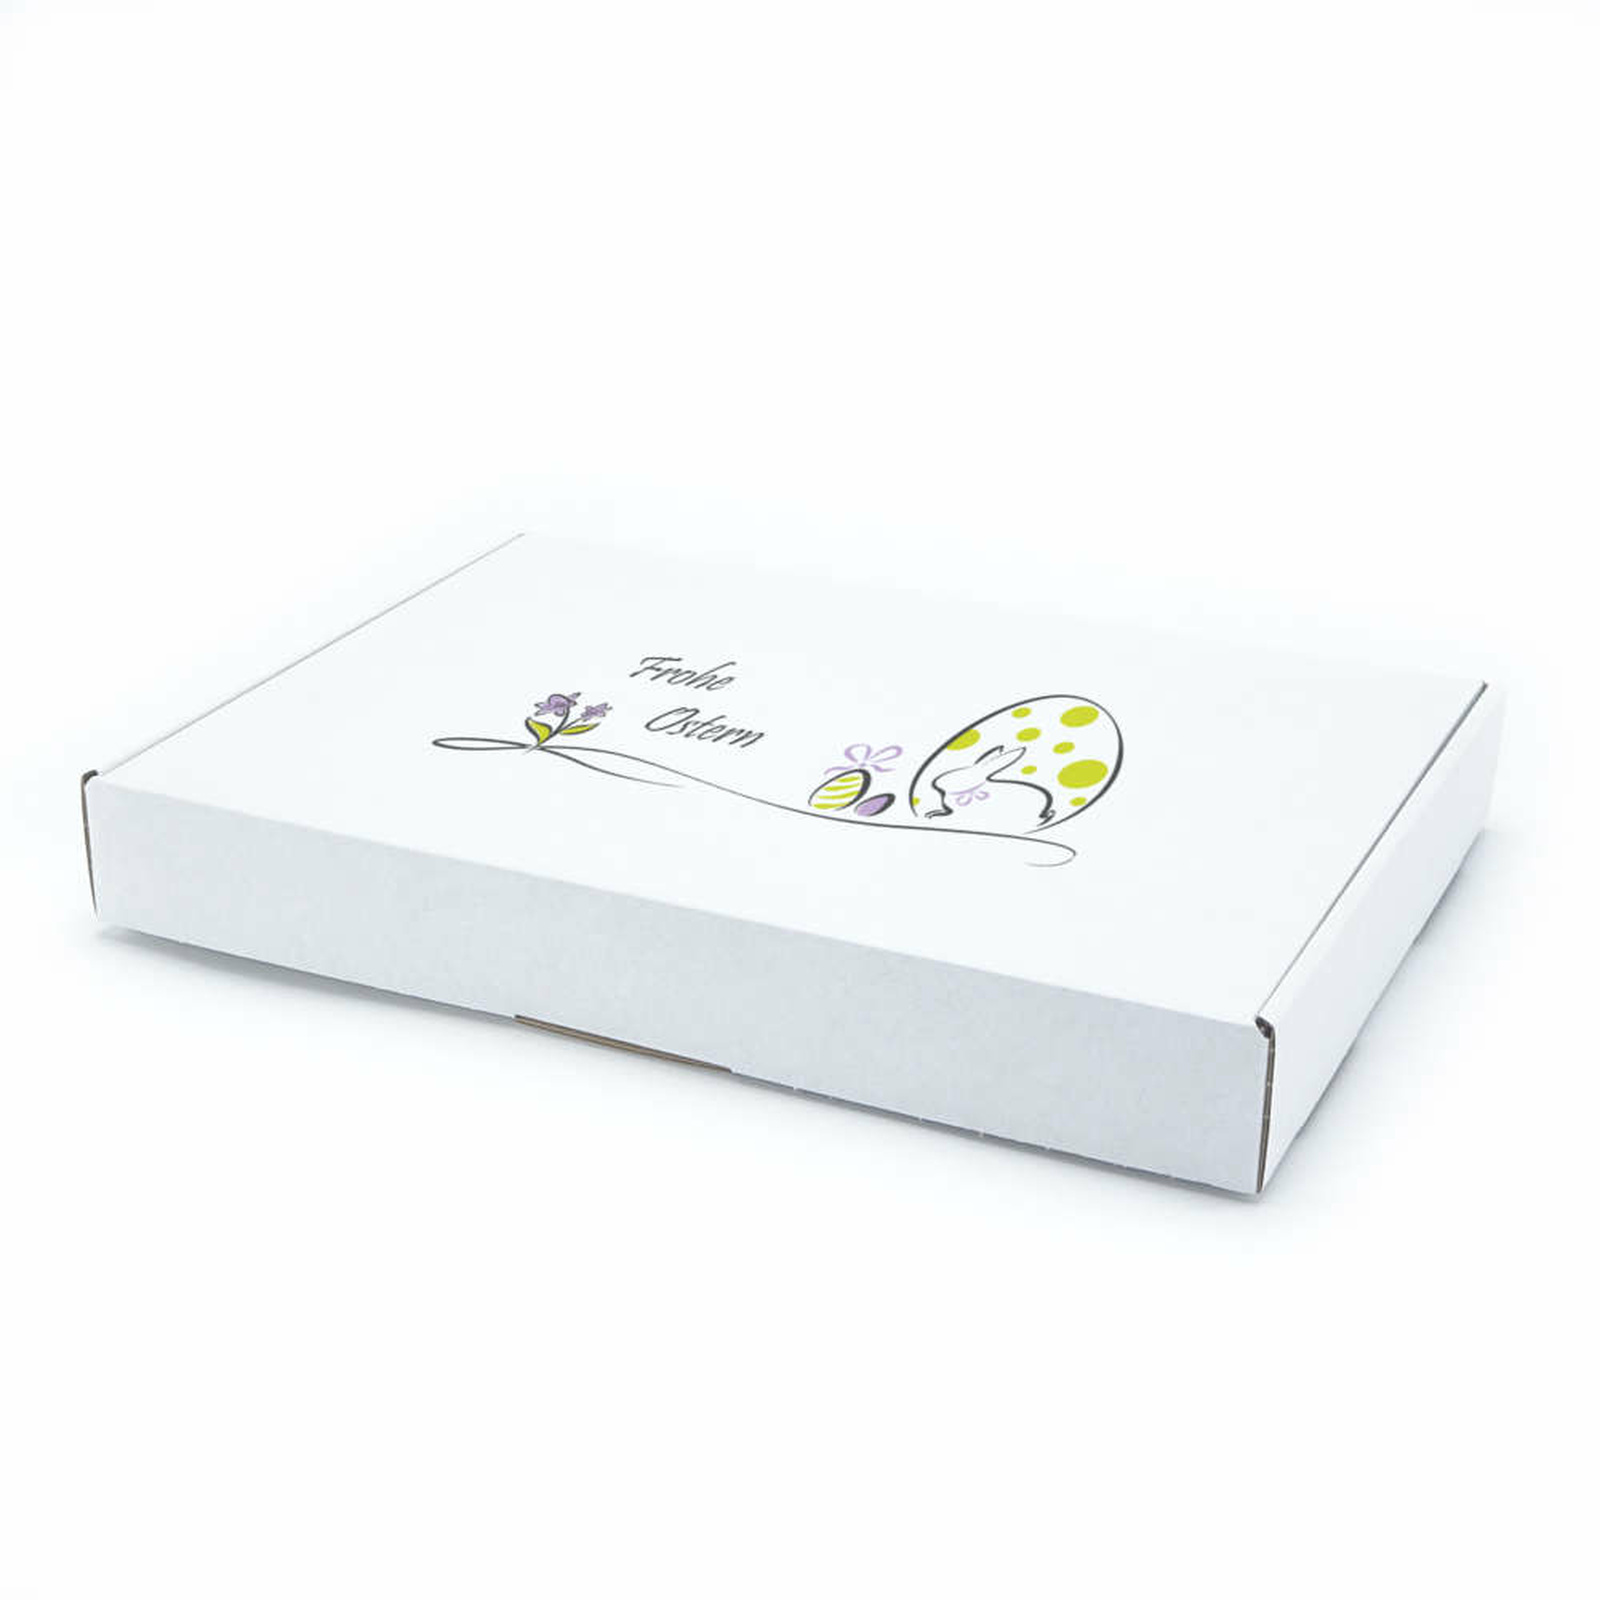 Maxi Letter Box 350x250x50 Mm With Easter Motif At Low